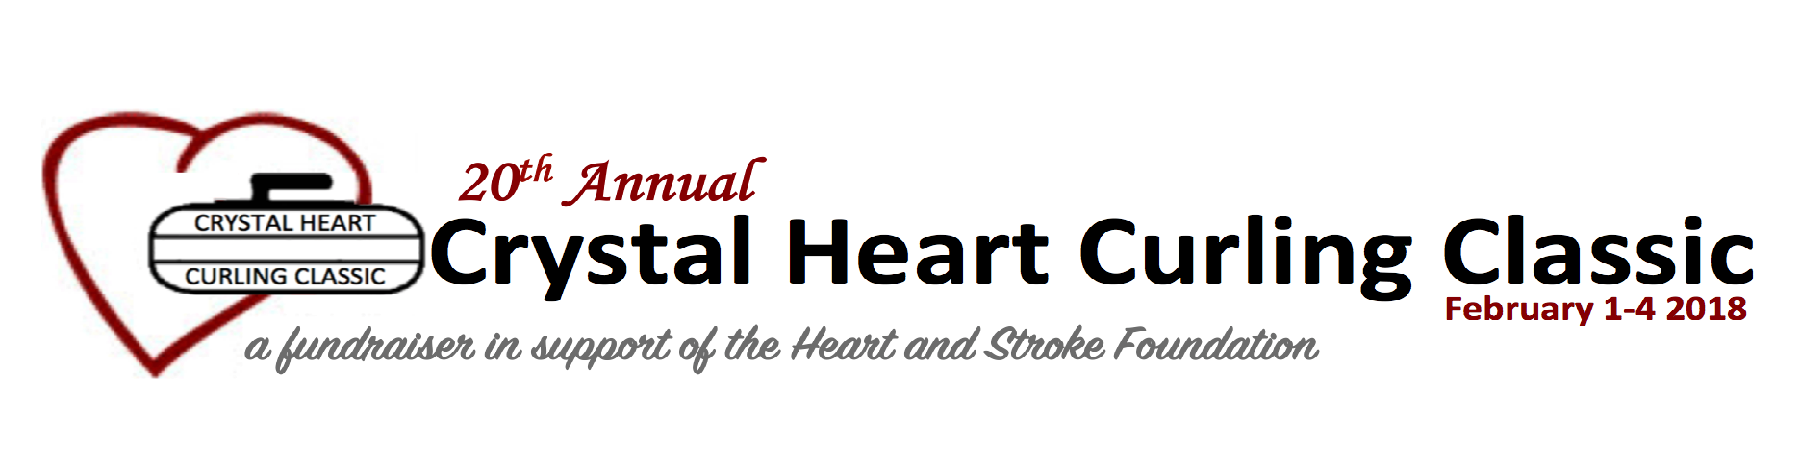 Crystal Heart Curling Classic